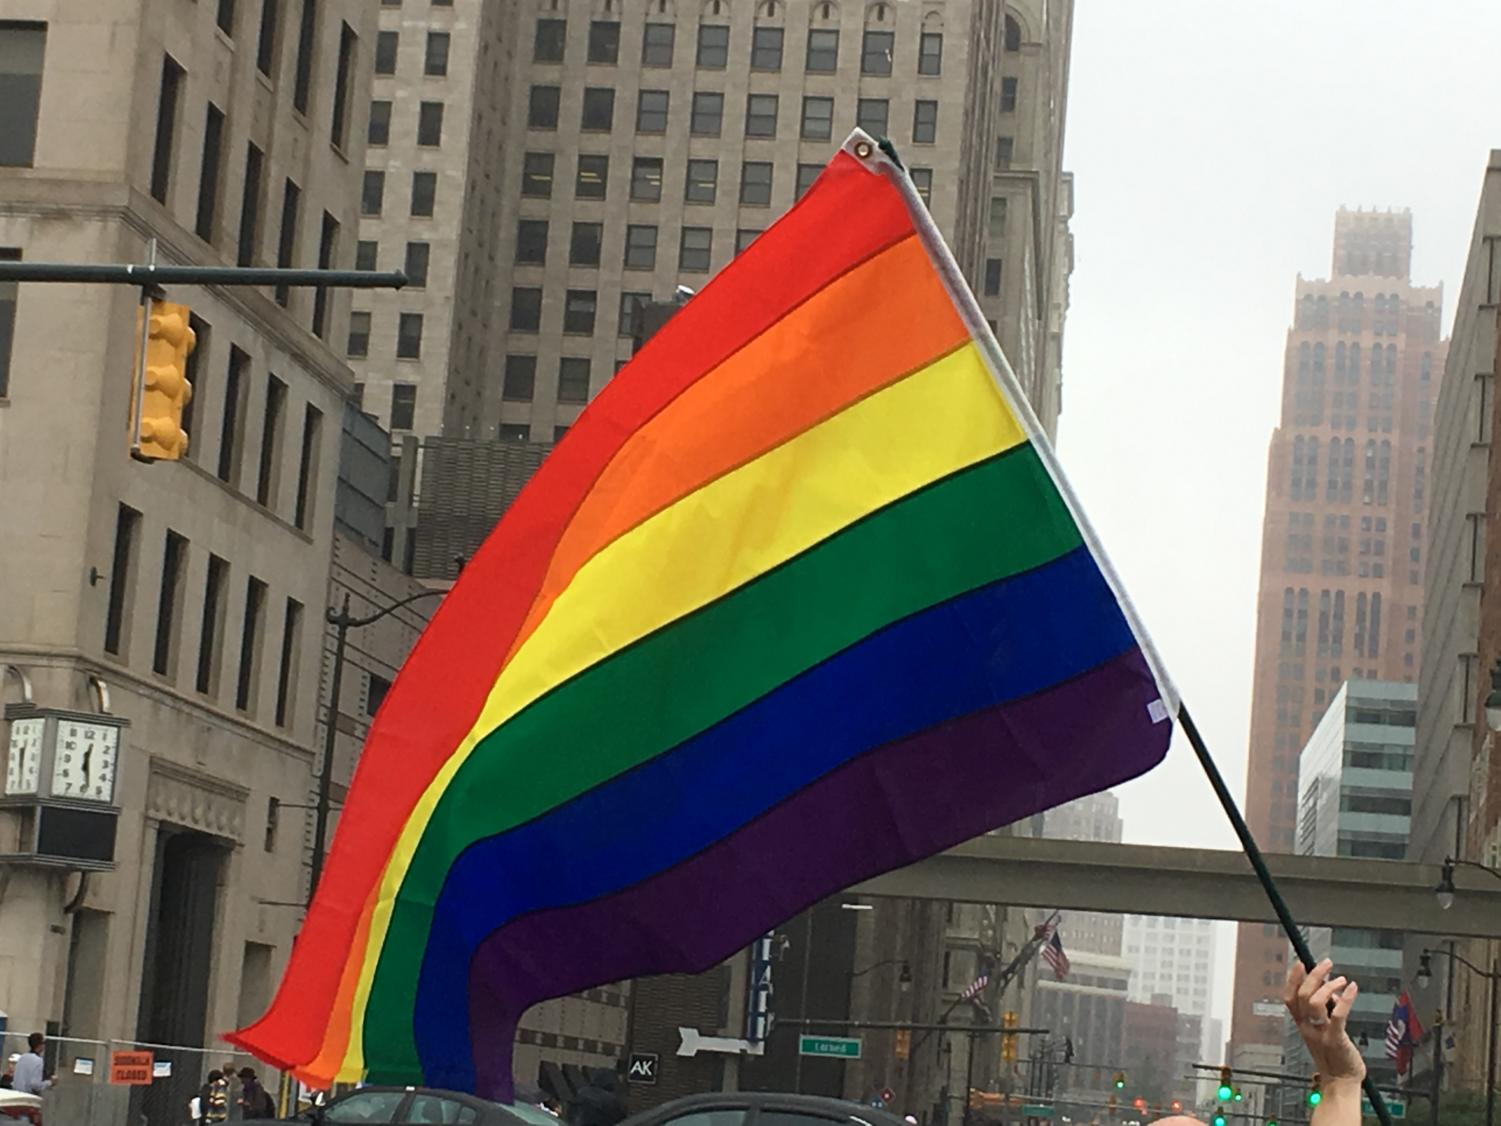 A rainbow flag was flying in the wind during the Pride Parade